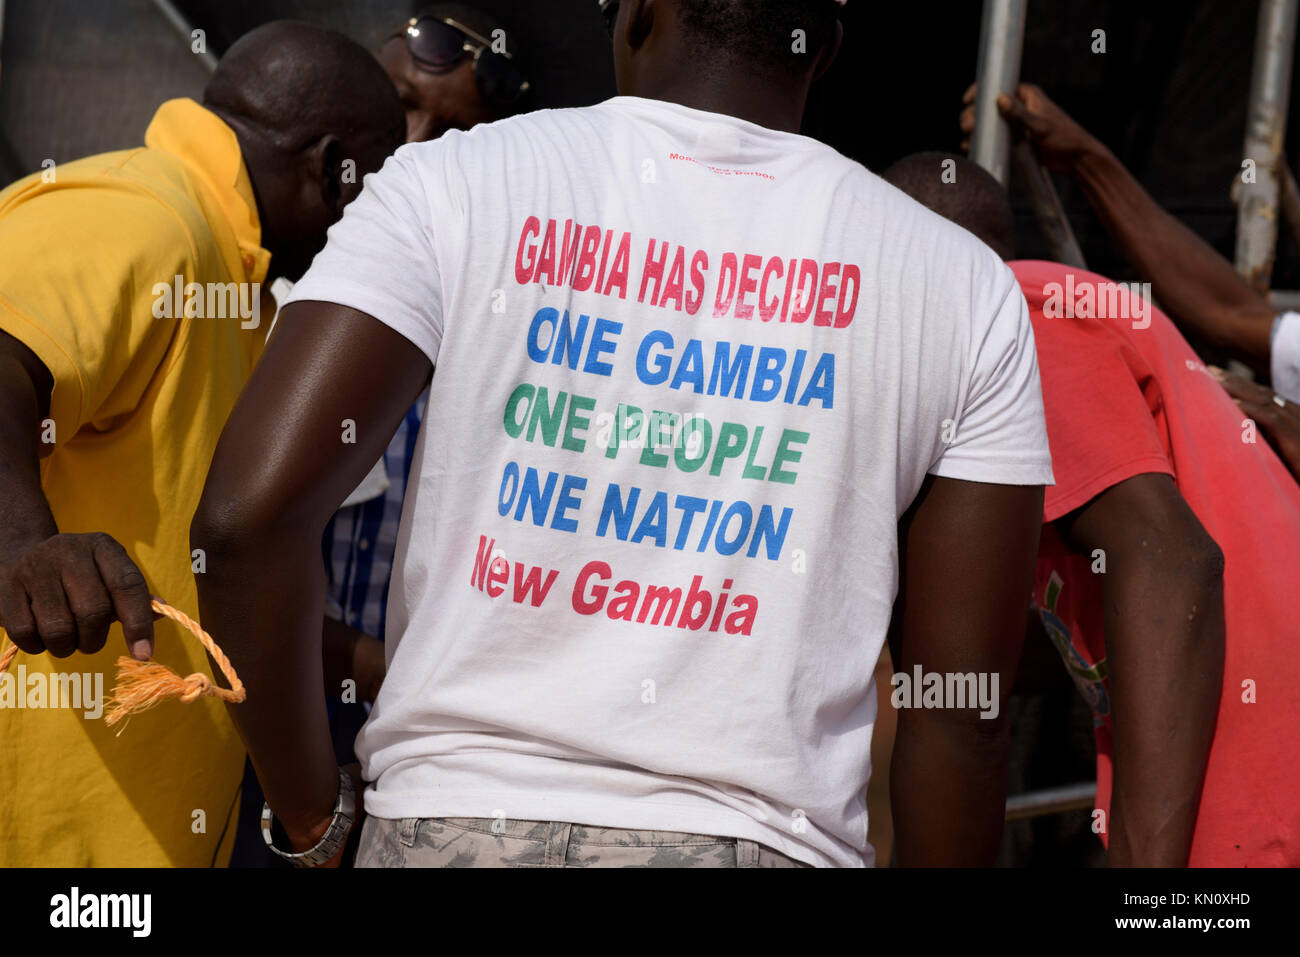 Man wearing T-shirt 'Gambia Has Decided, One Gambia, One People, One Nation, New Gambia' - Stock Image